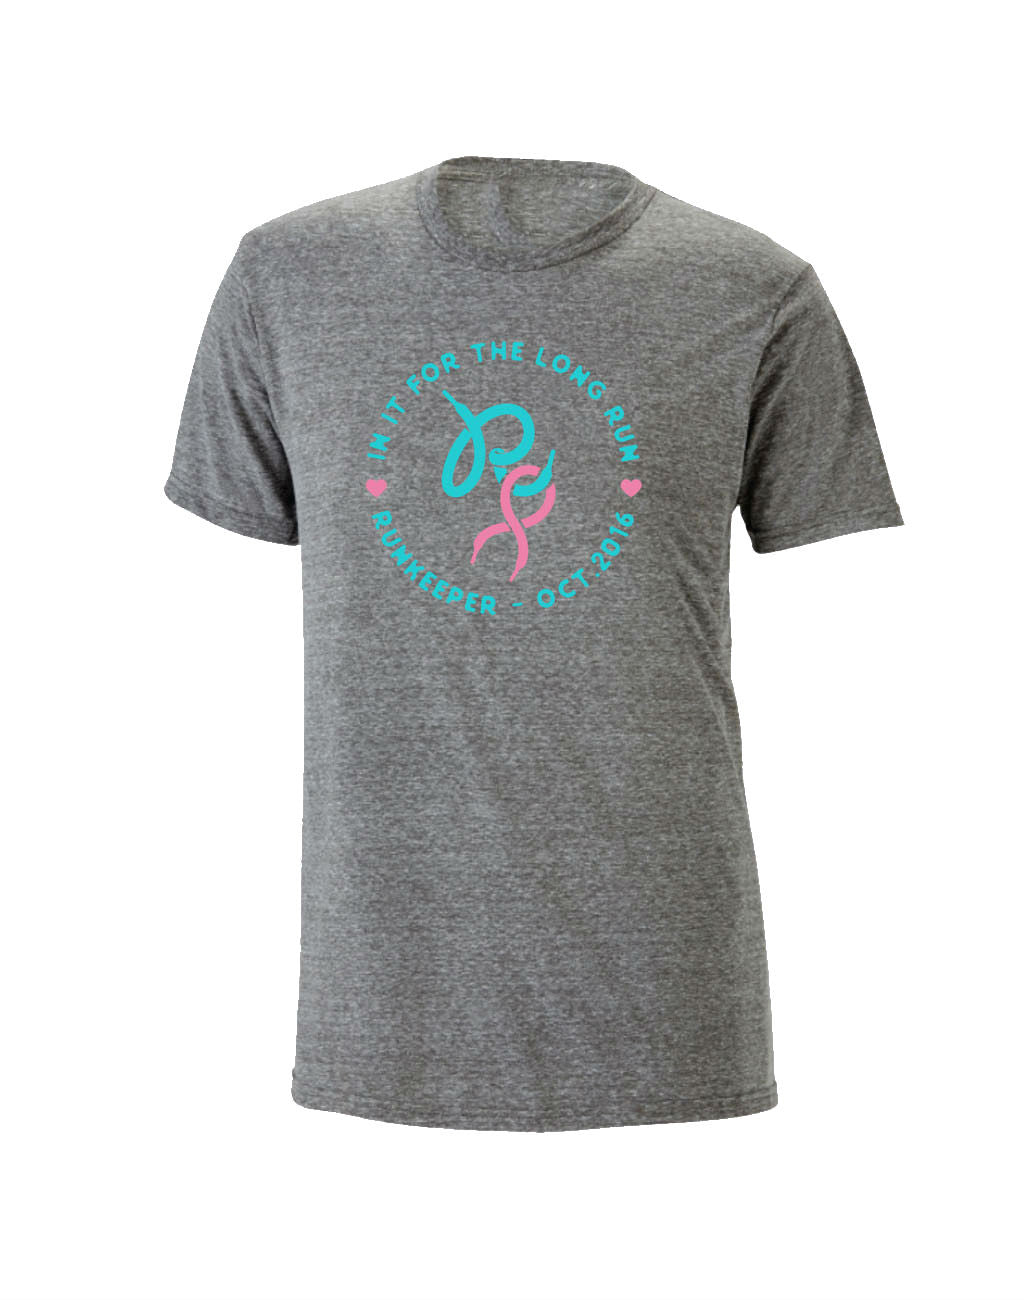 The Long Run Tee for Cancer Awareness (Pink Ribbon)